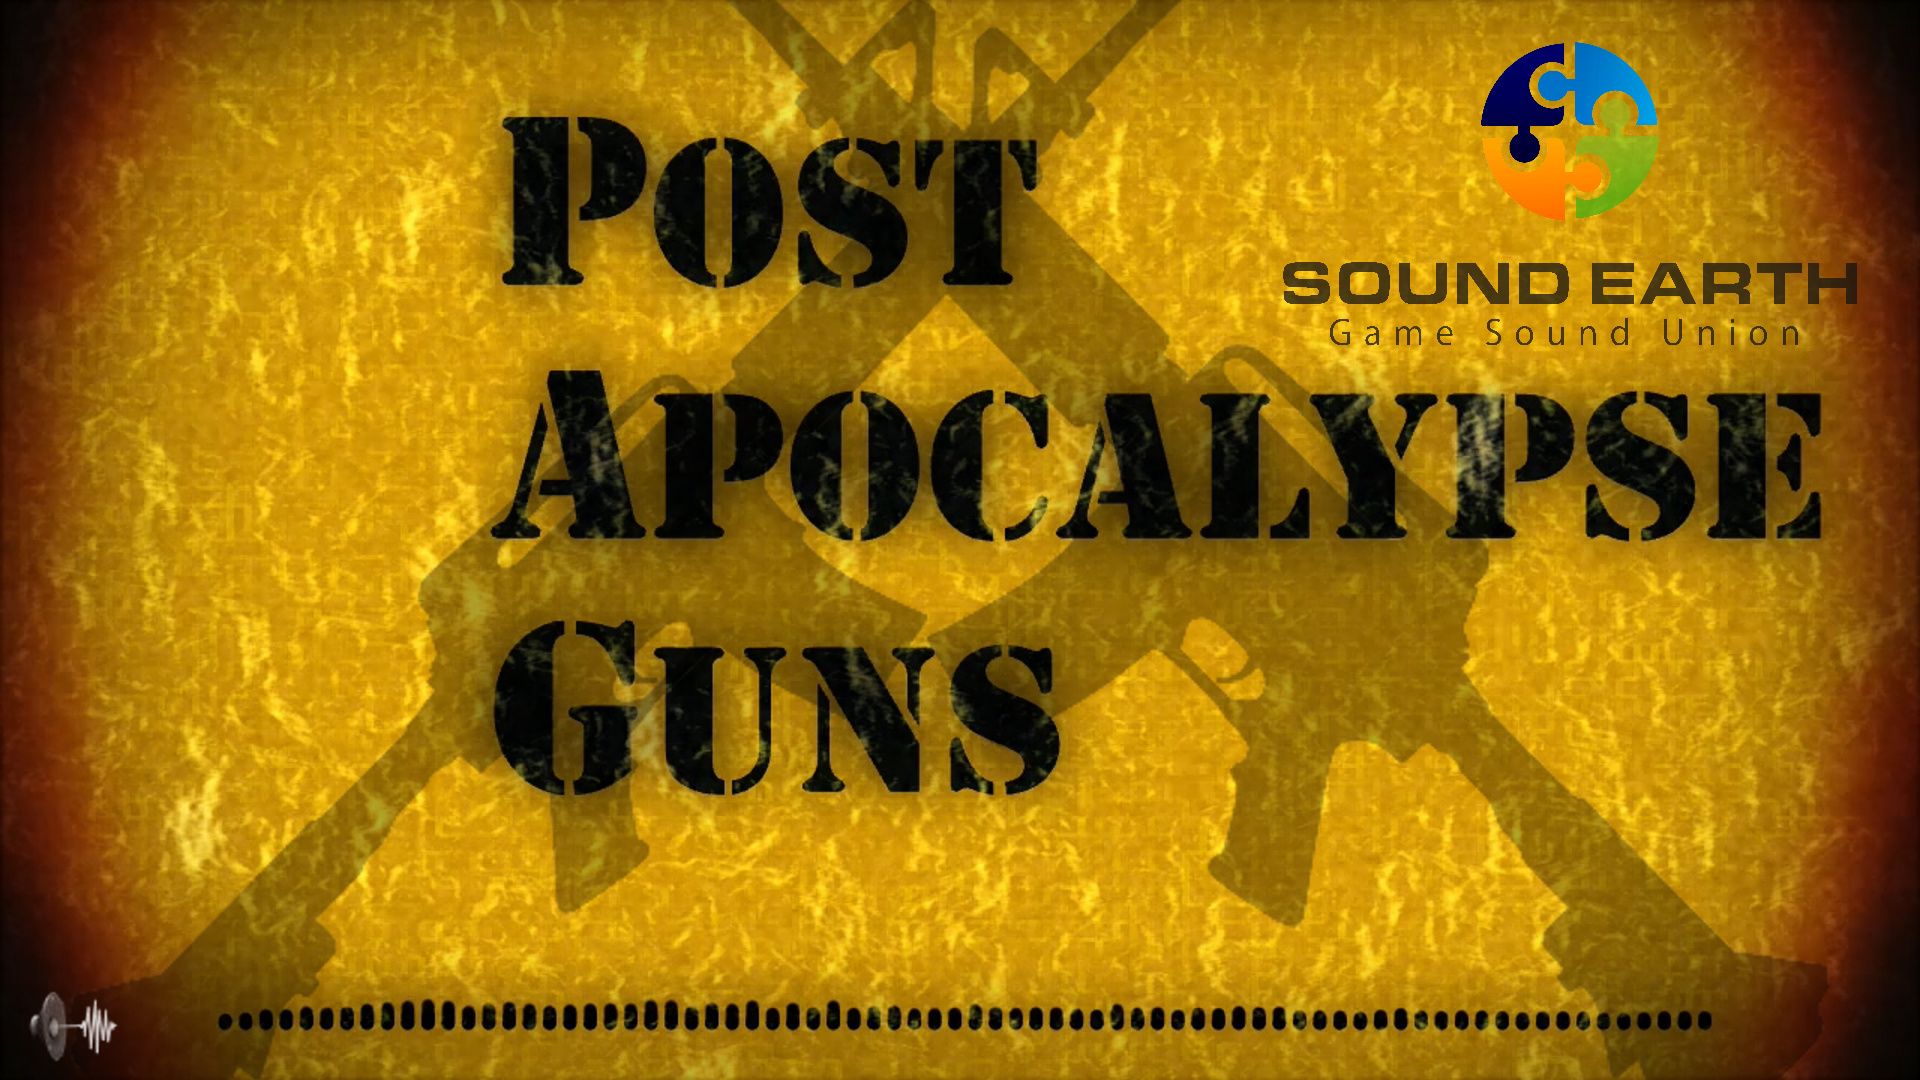 Post Apocalypse Guns by Sound Earth